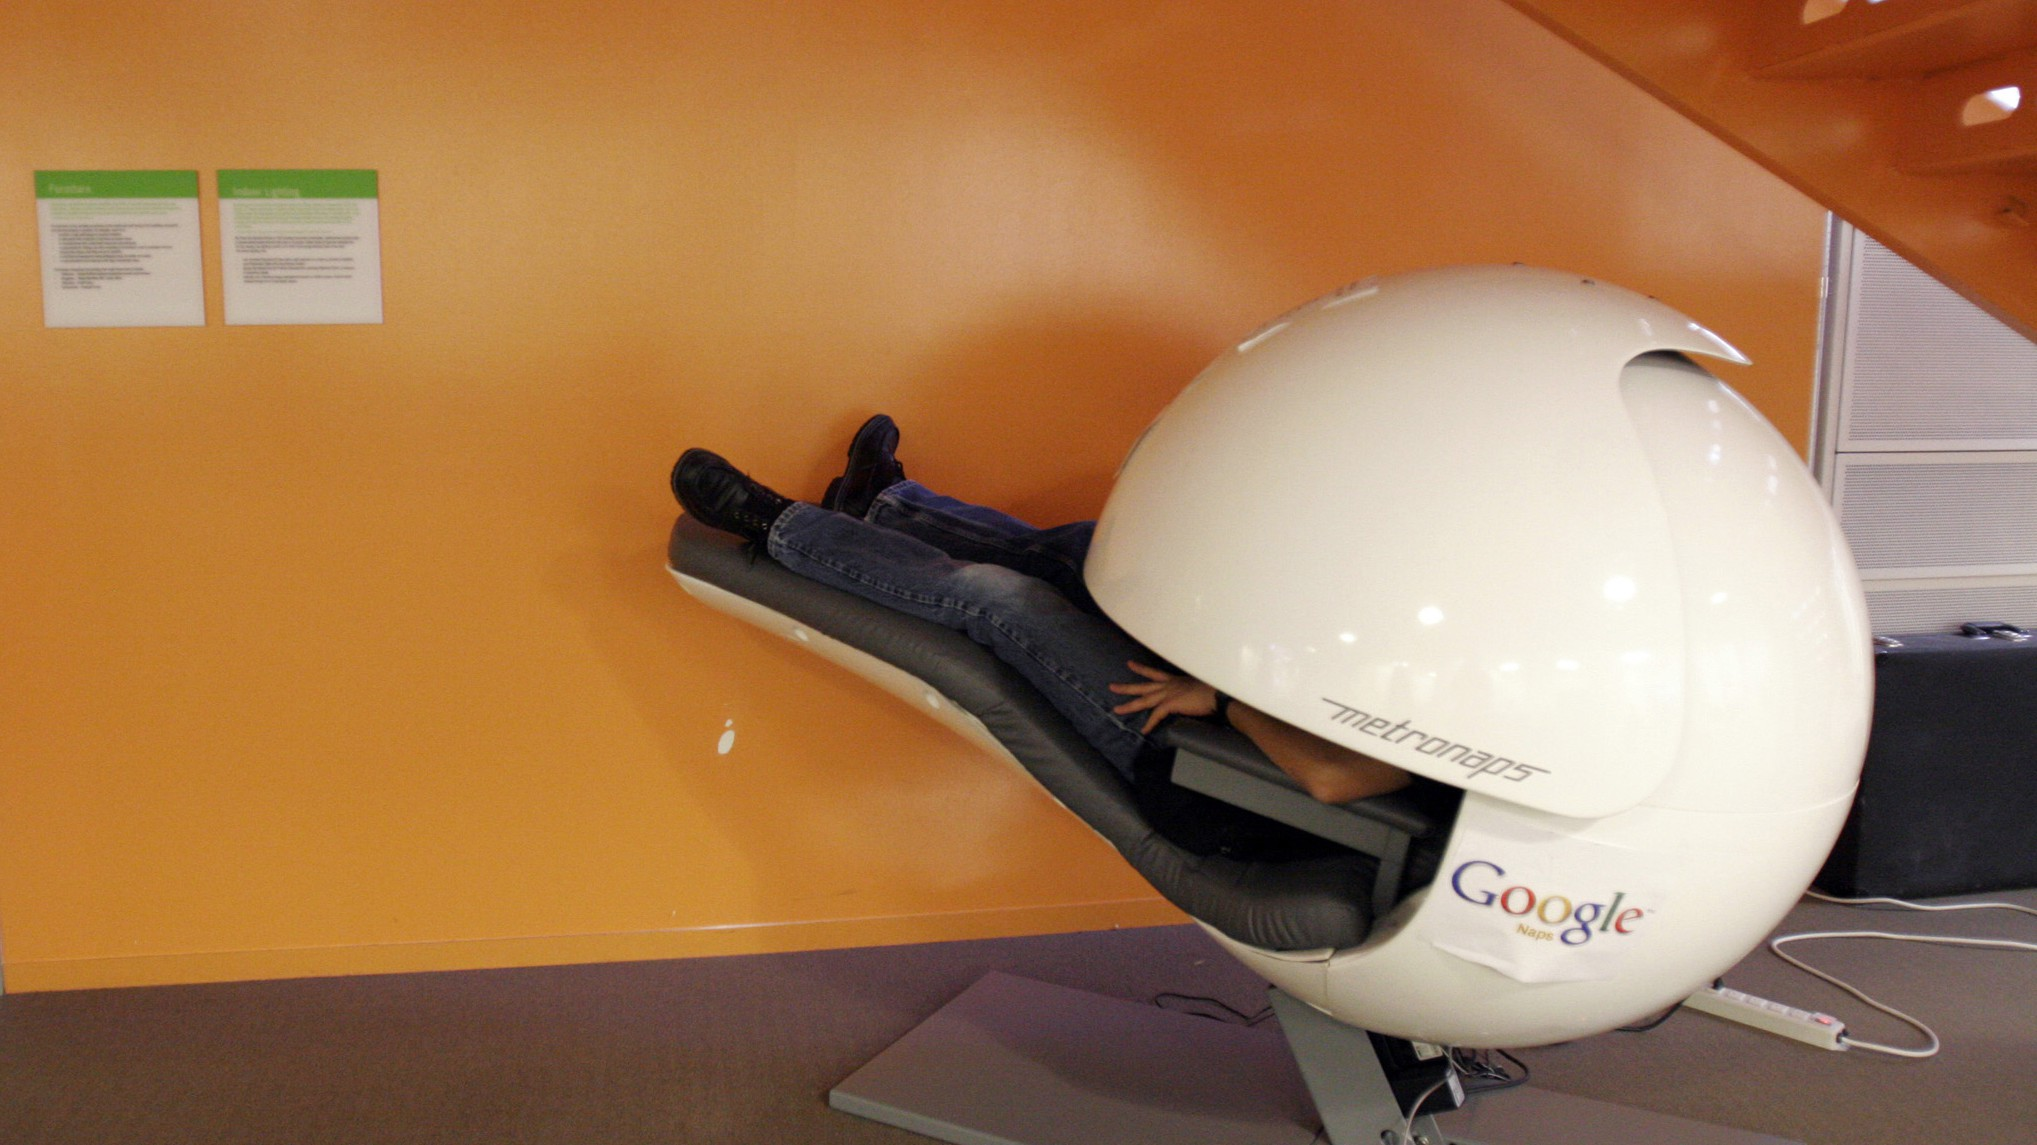 An employee takes a nap in a nap pod which blocks out light and sound at the Google headquarters in Mountain View, California March 3, 2008. REUTERS/Erin Siegal (UNITED STATES) - RTR1XUQ1